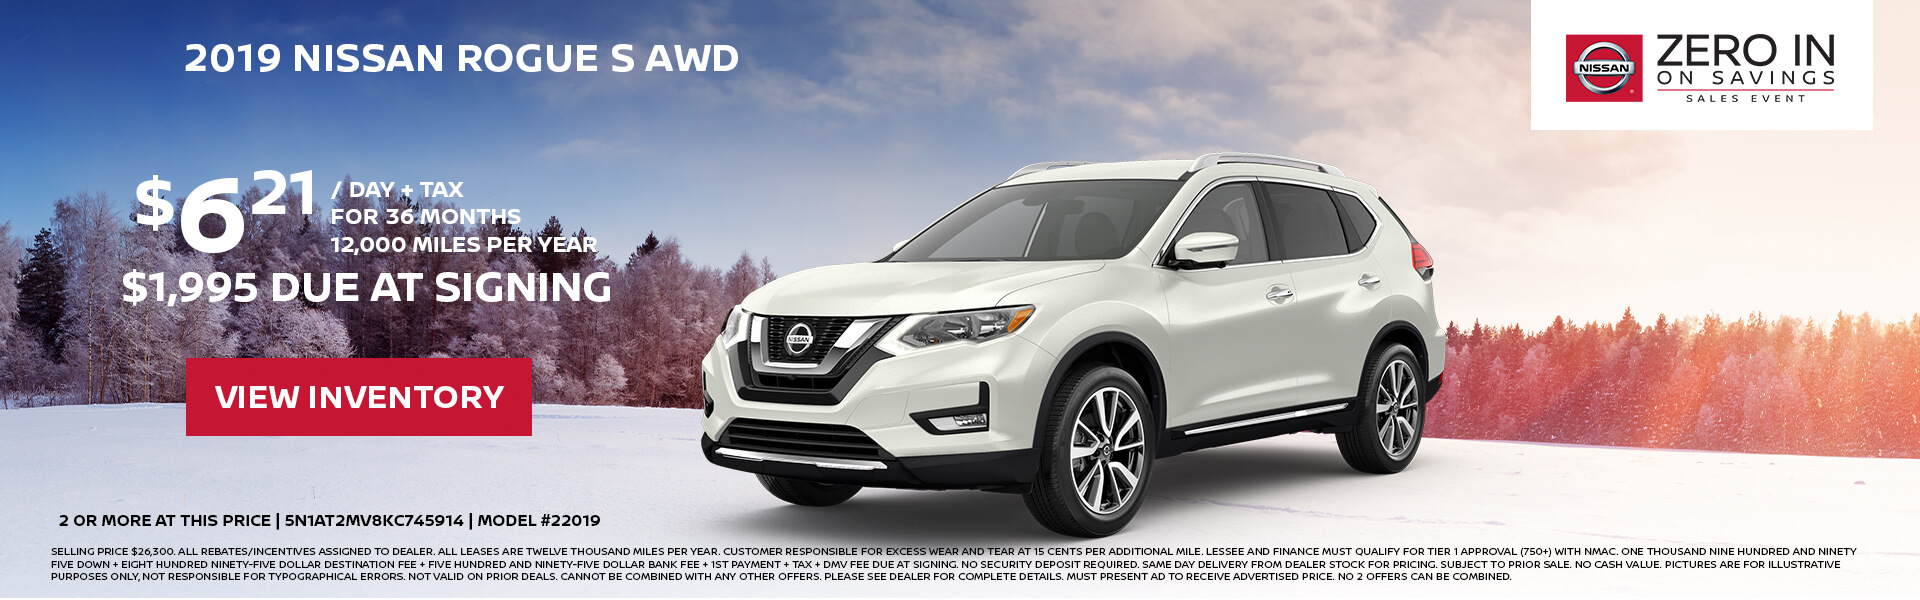 Nissan Rogue $189 Lease